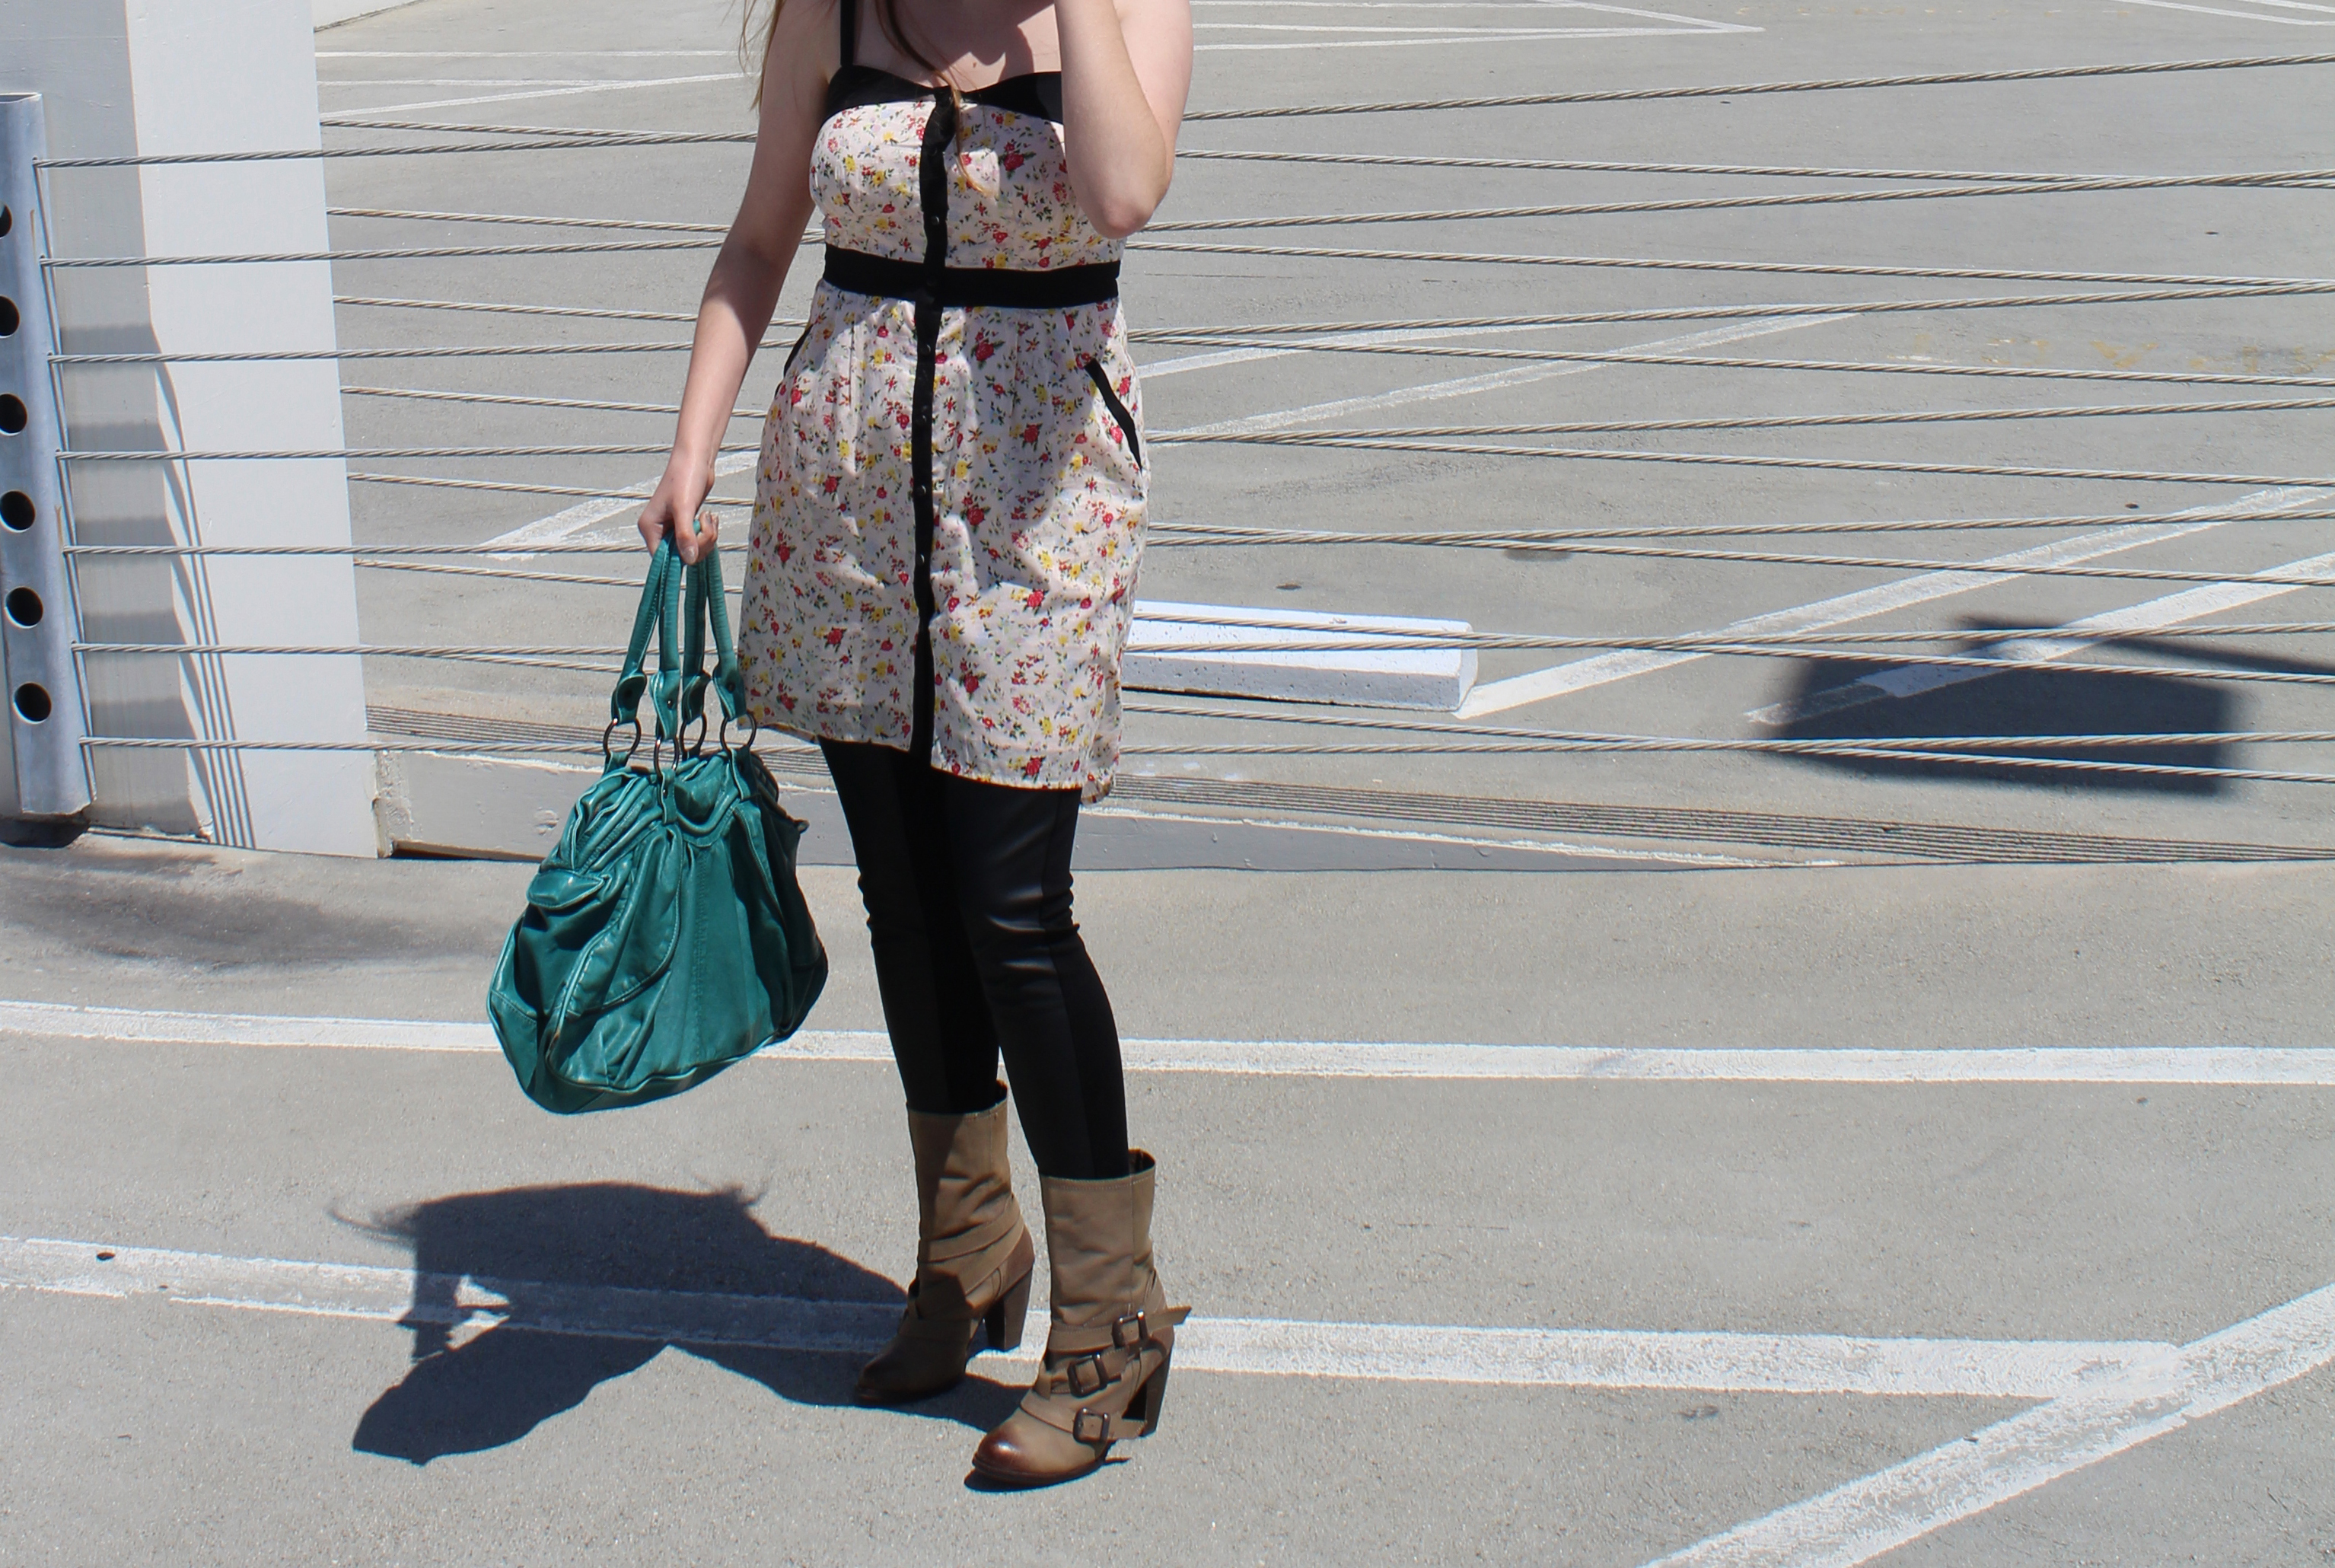 Floral dress by BCBGeneration, Vegan leather leggings from FACTORY by Erik Hart, boots by Steve Madden